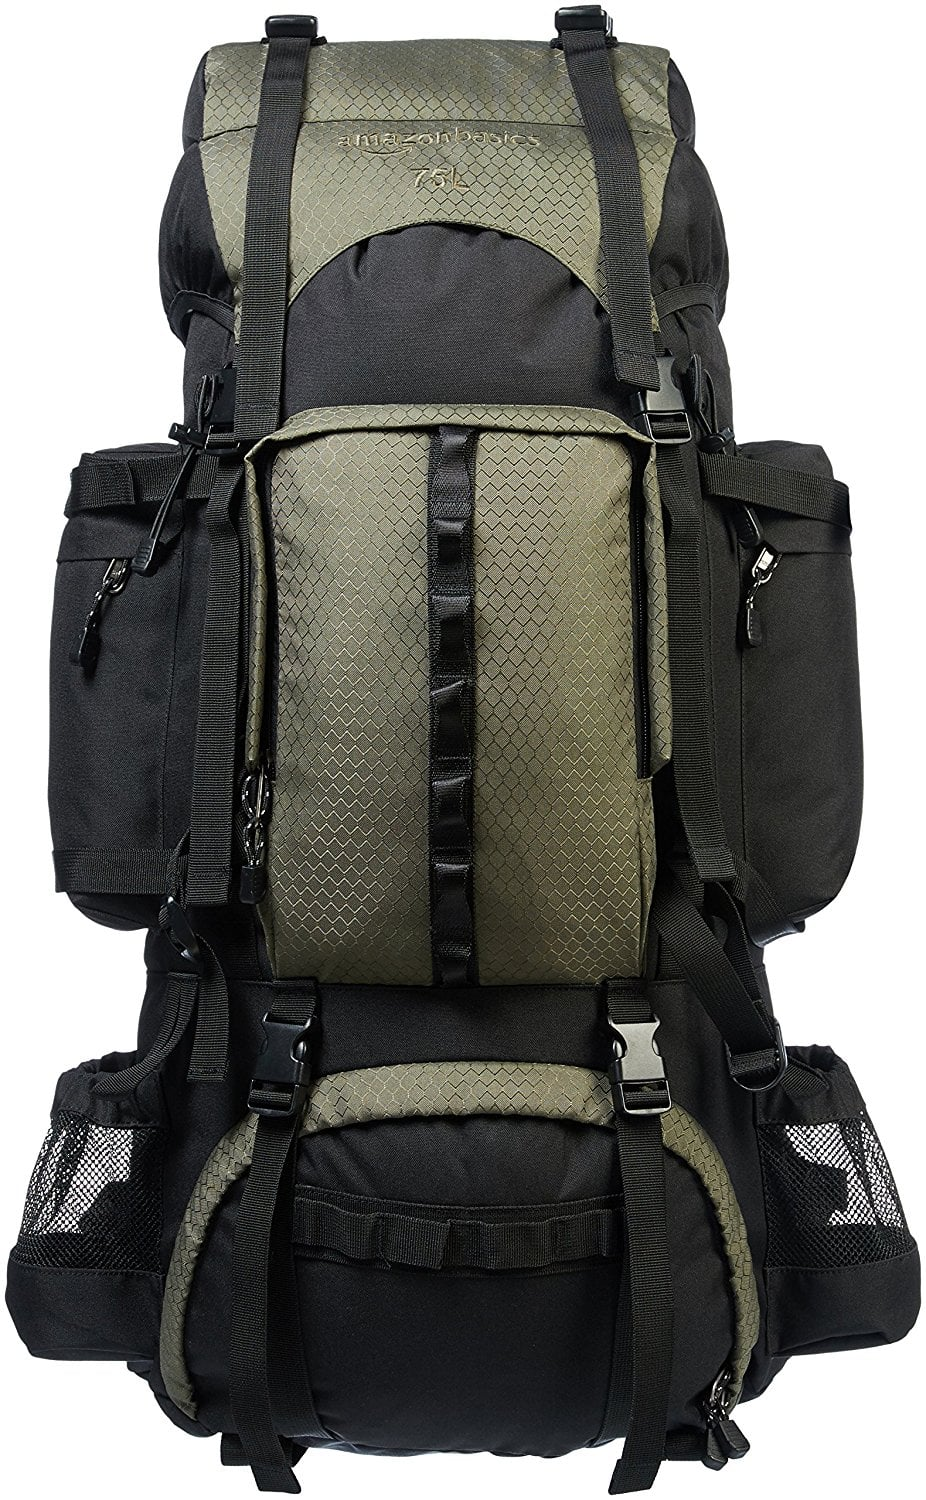 AmazonBasics 75L Internal Frame Hiking Backpack w/ Rainfly ...